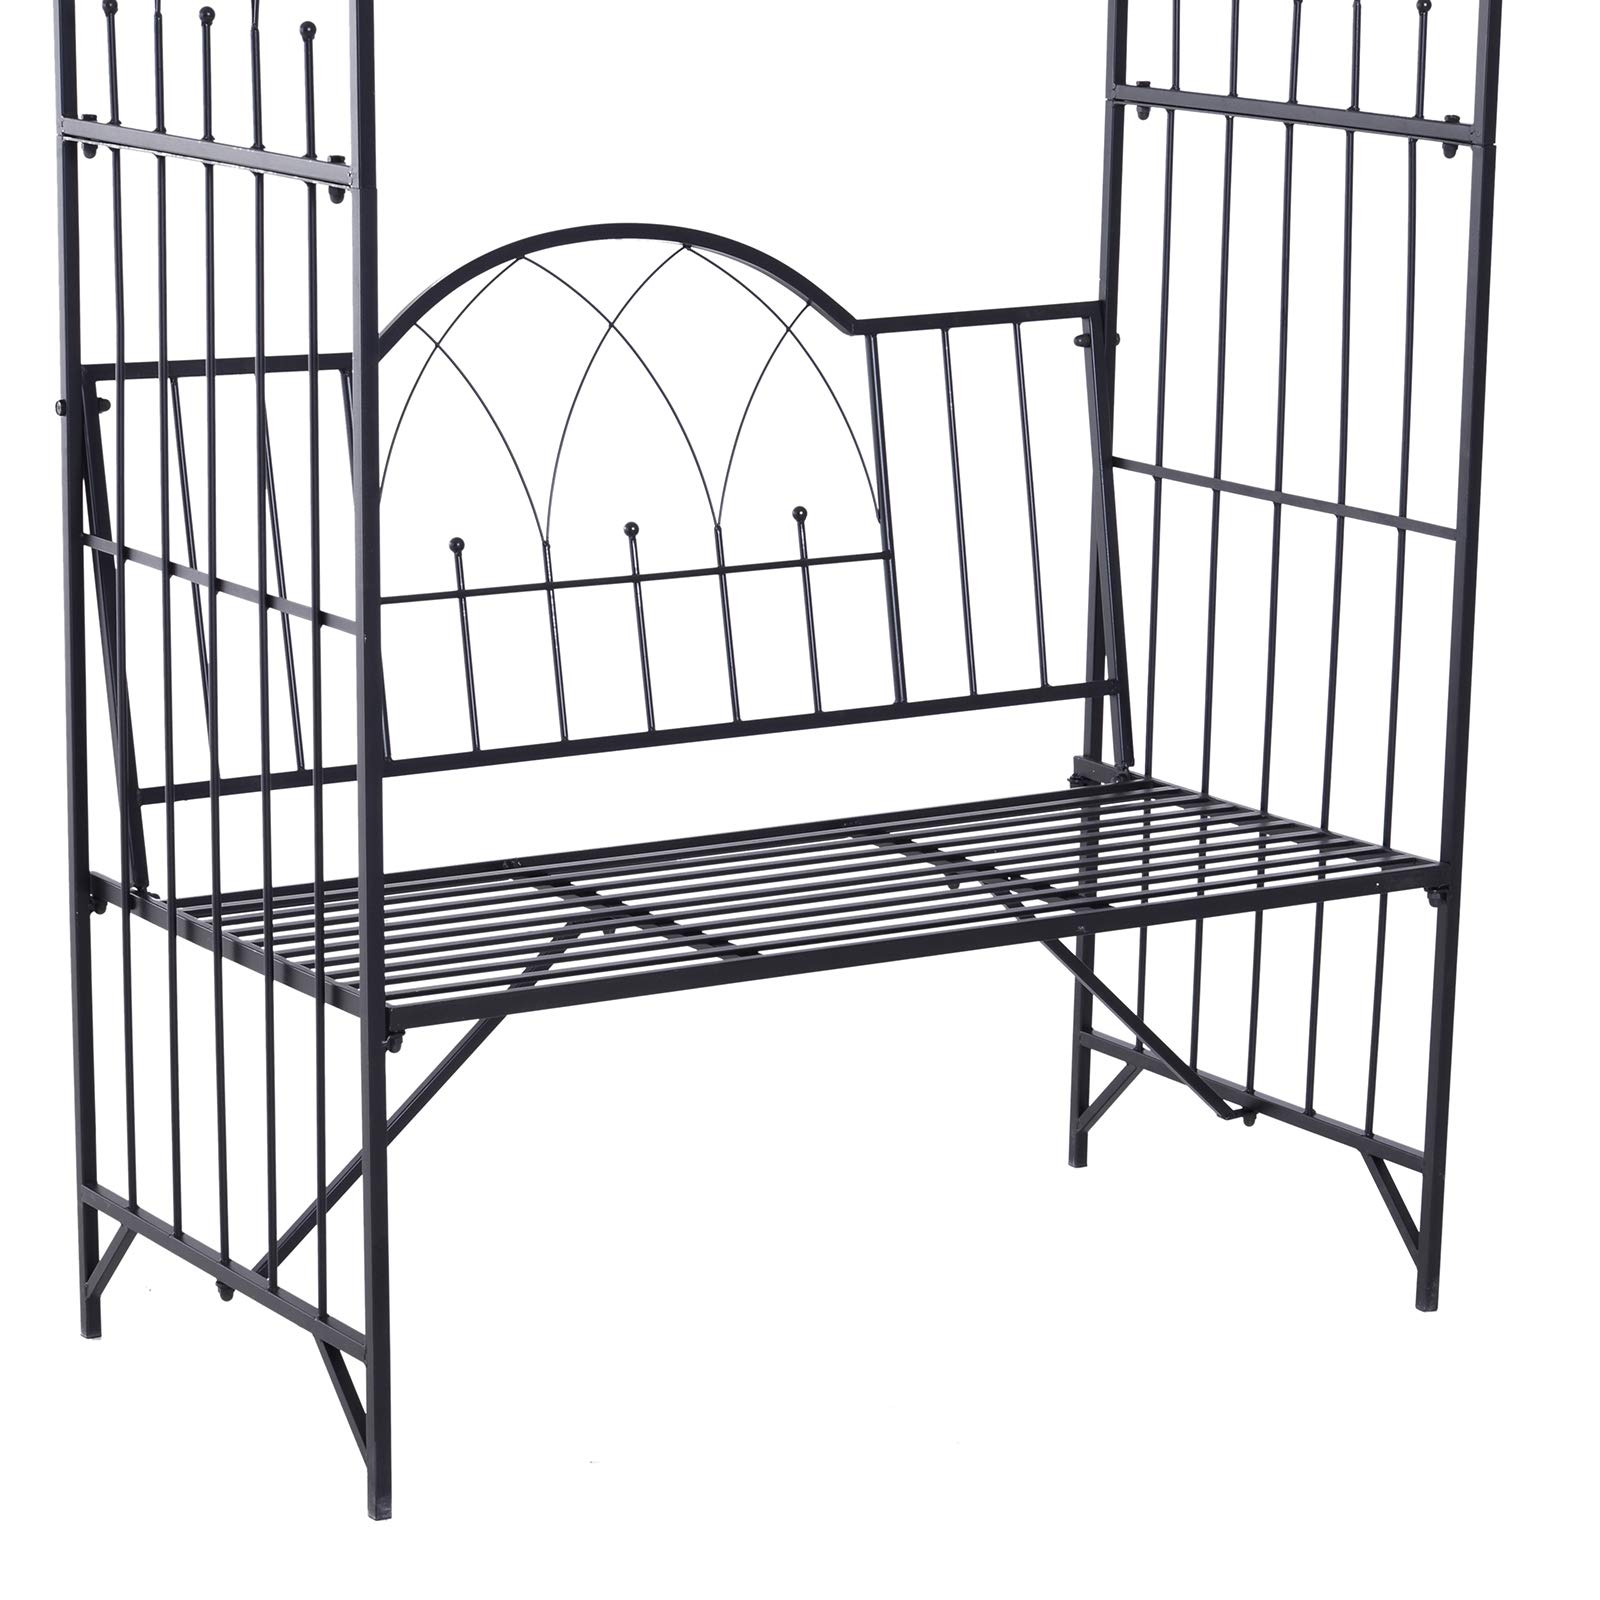 Outsunny Outdoor Garden Arbor Arch Steel Metal with Bench Seat - Black by Outsunny (Image #6)